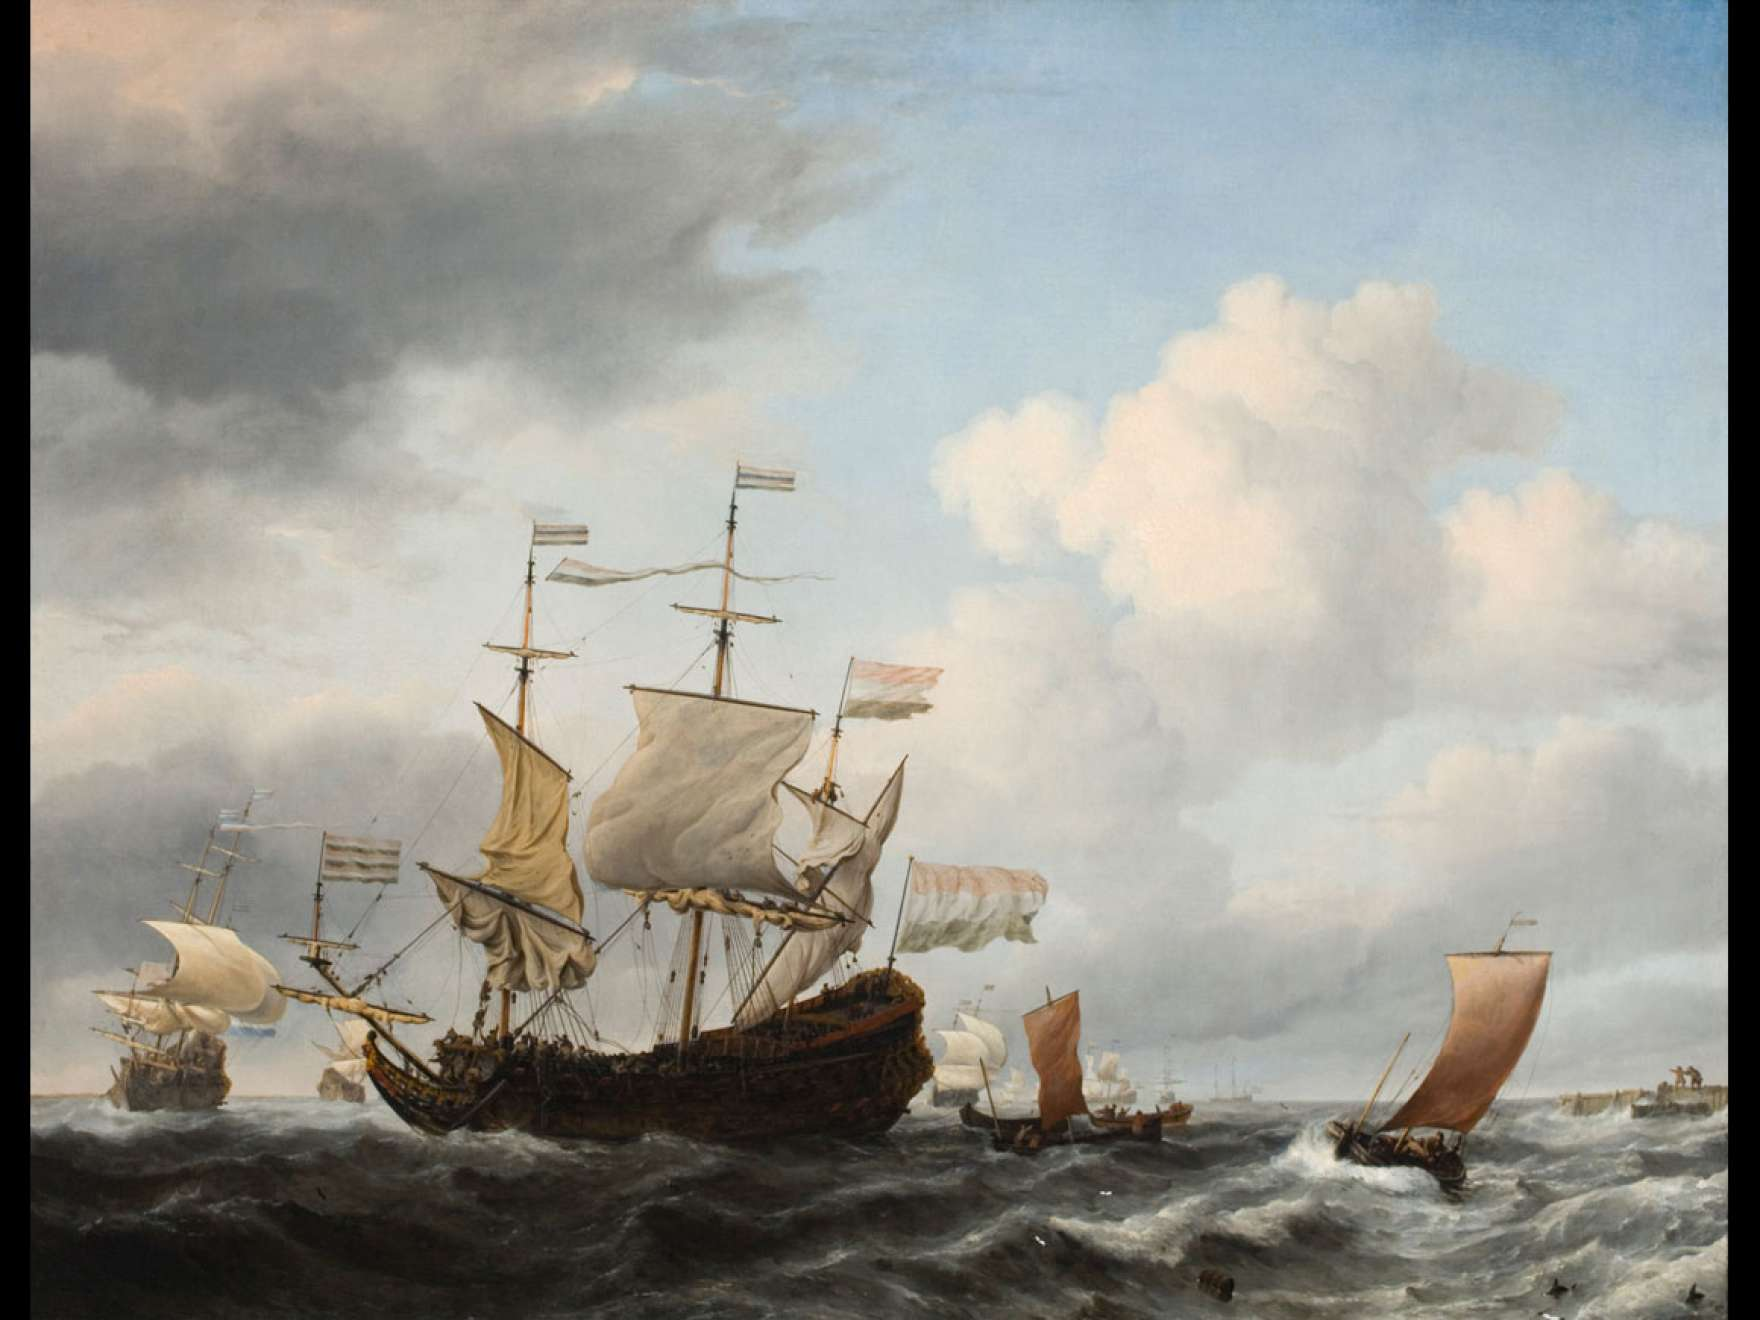 Willem van de Velde, the Younger's painting, A Dutch Flagship Coming to Anchor Close to the Land in a Fresh Breeze